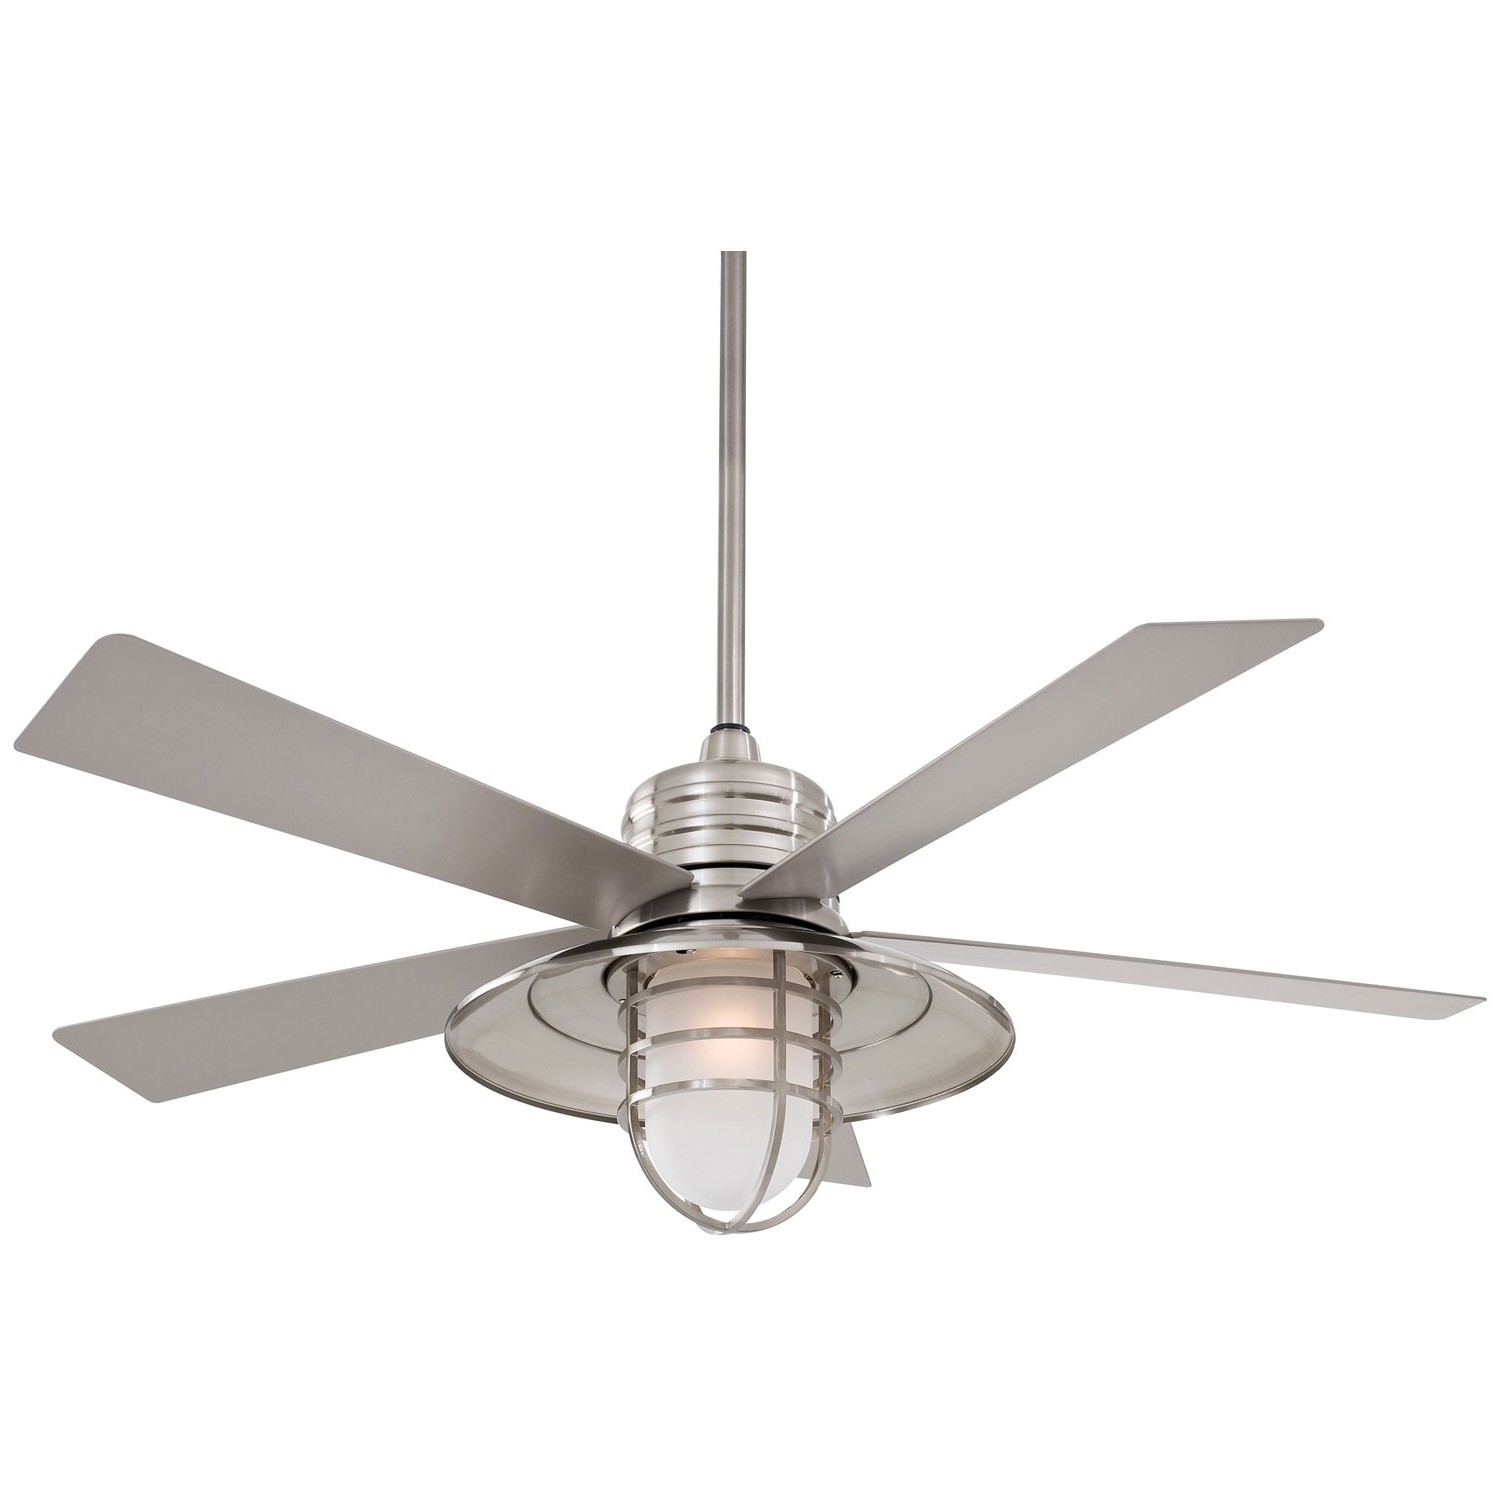 Fashionable Minka Aire Rainman Brushed Nickel 54 Inch Blade Indoor/outdoor With Outdoor Ceiling Fans For Wet Locations (View 2 of 20)